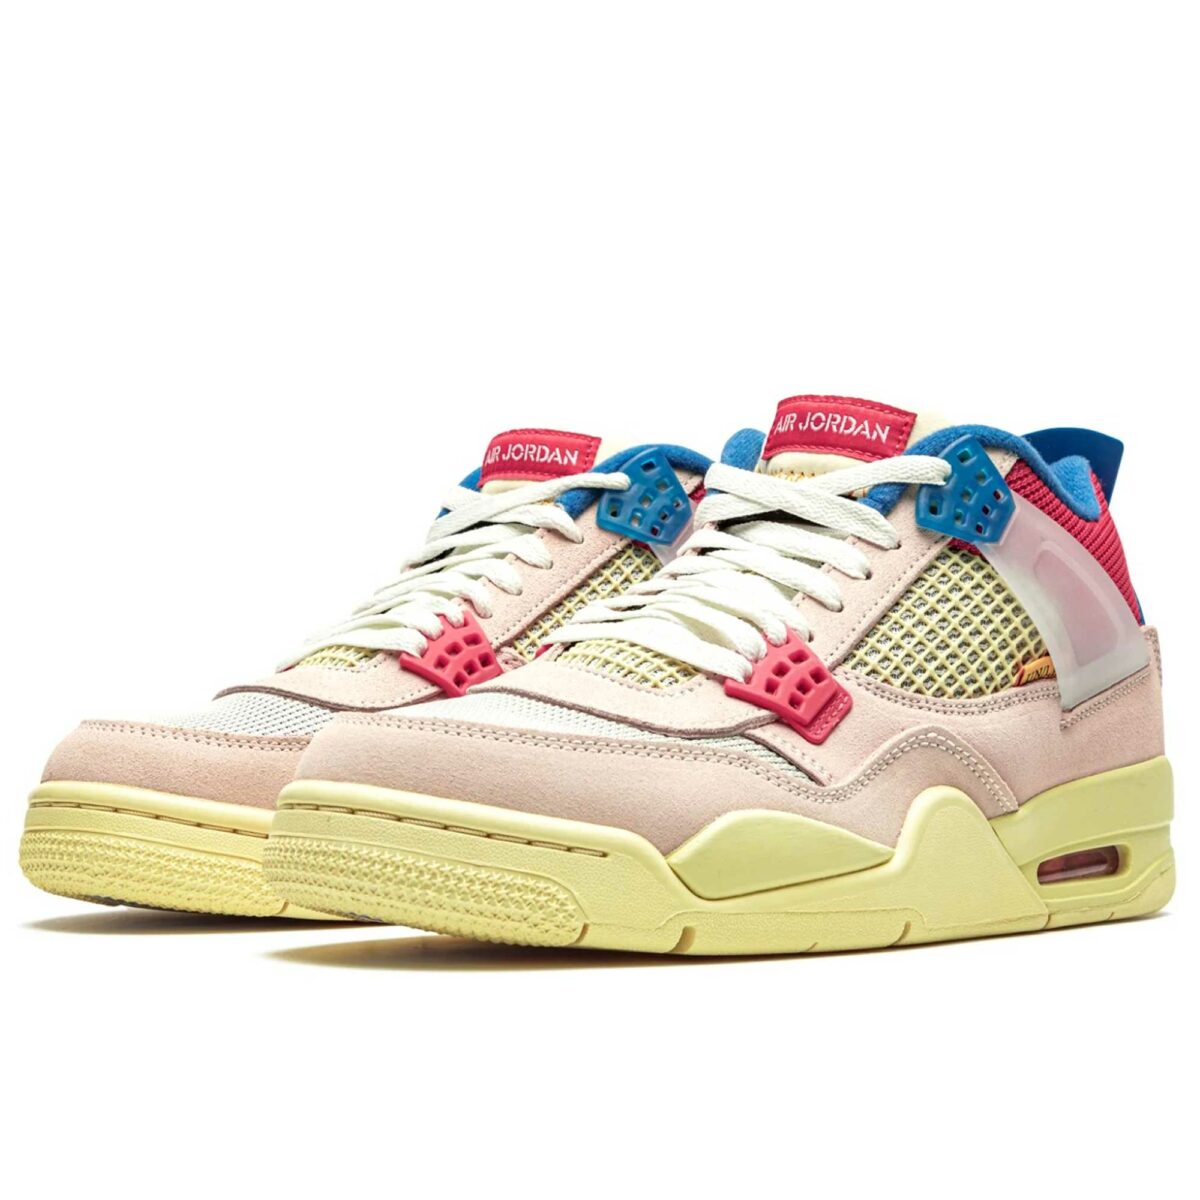 nike air Jordan 4 retro sp union - guava ice DC9533_800 купить